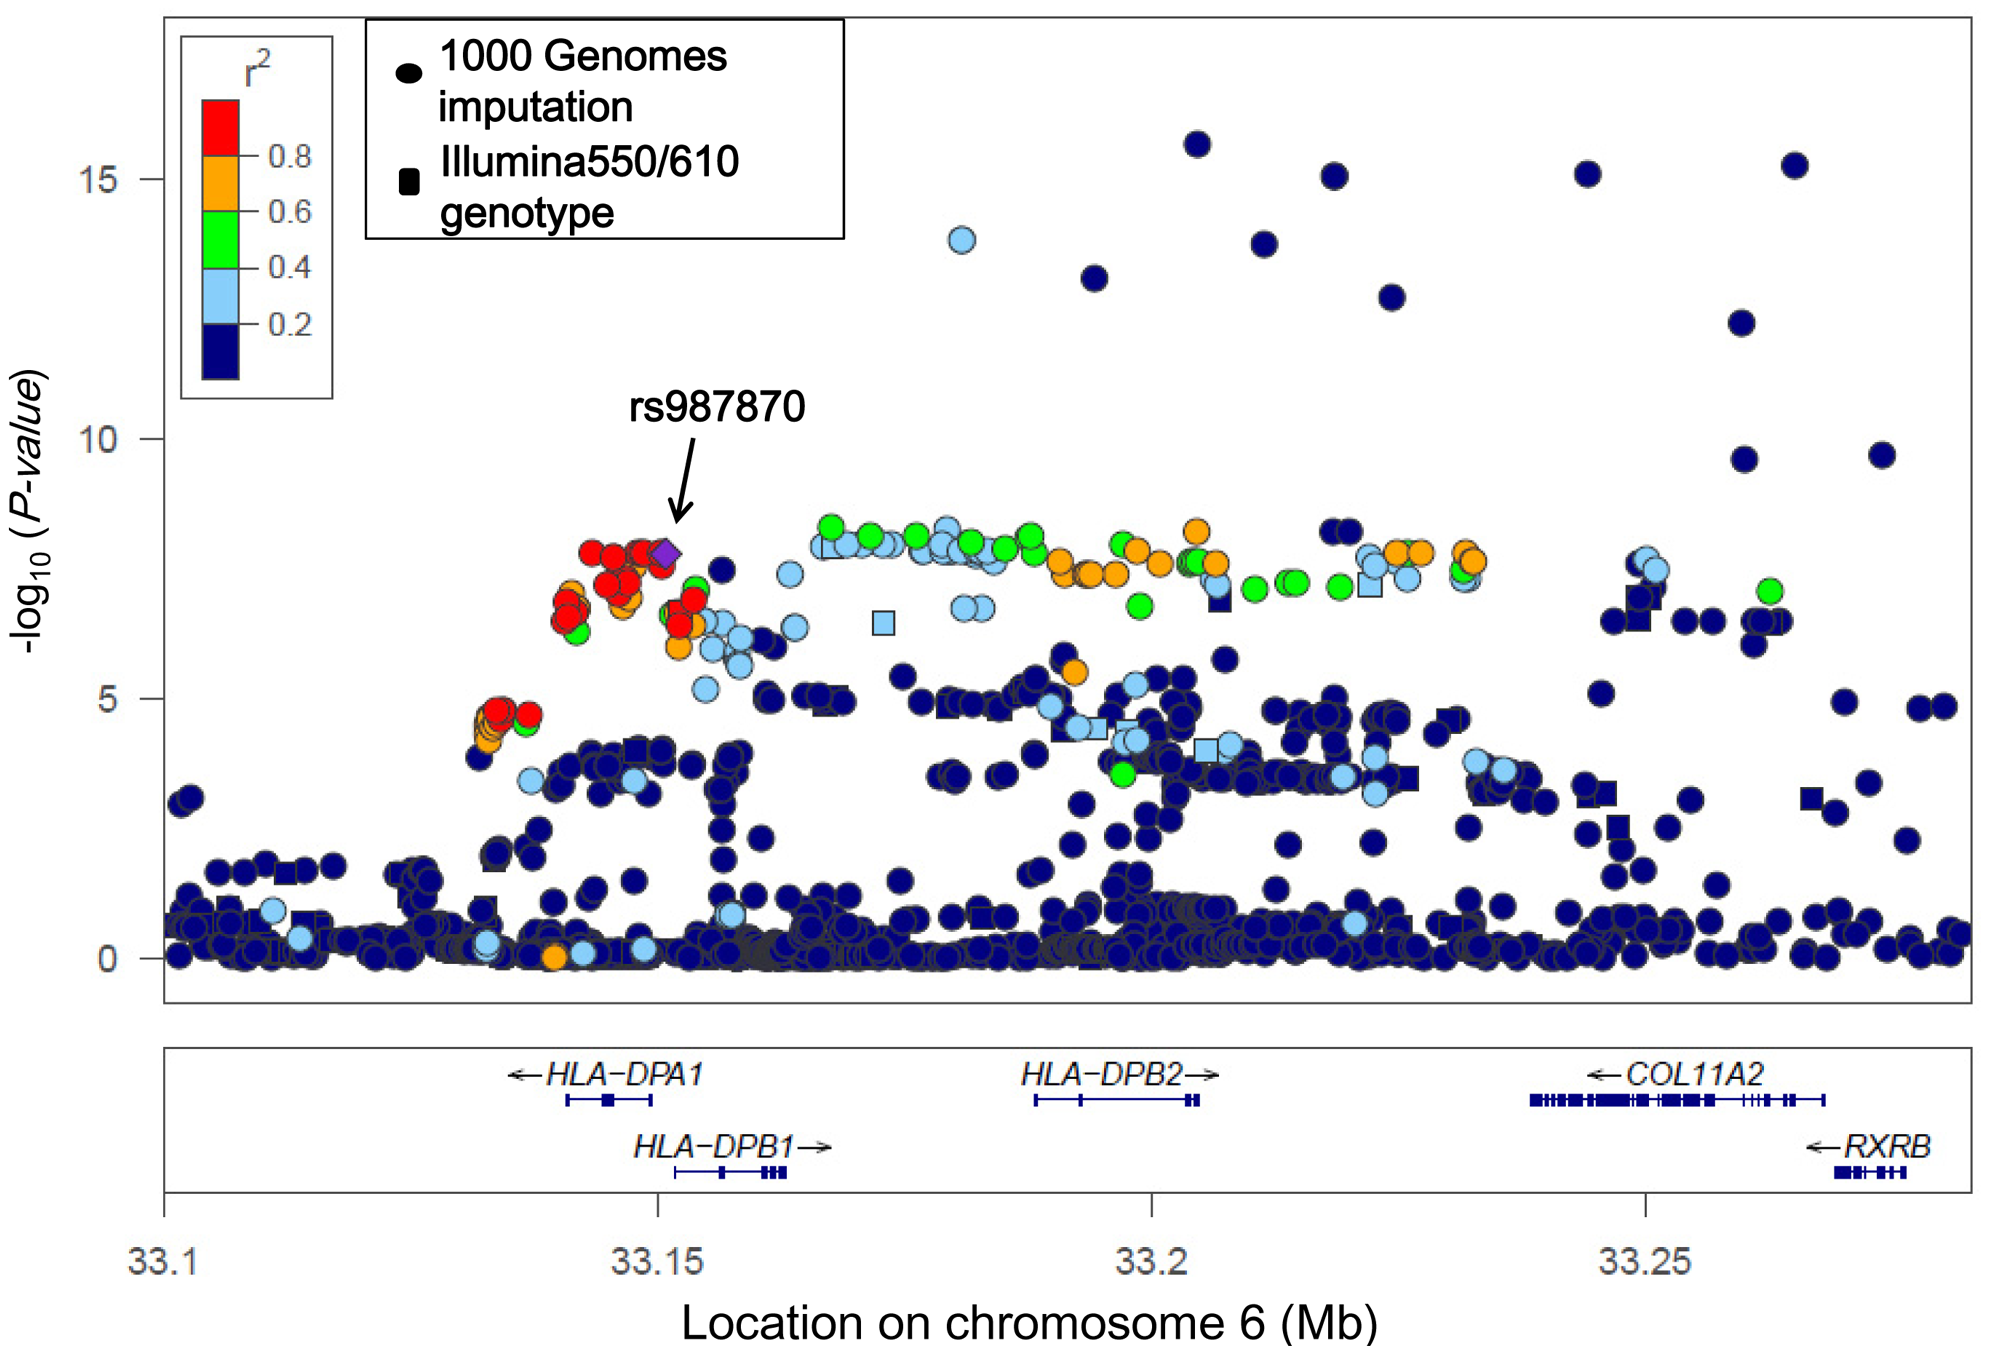 Association findings of genotyped (squares) and imputed (circles) SNPs in the <i>HLA-DP</i> region.